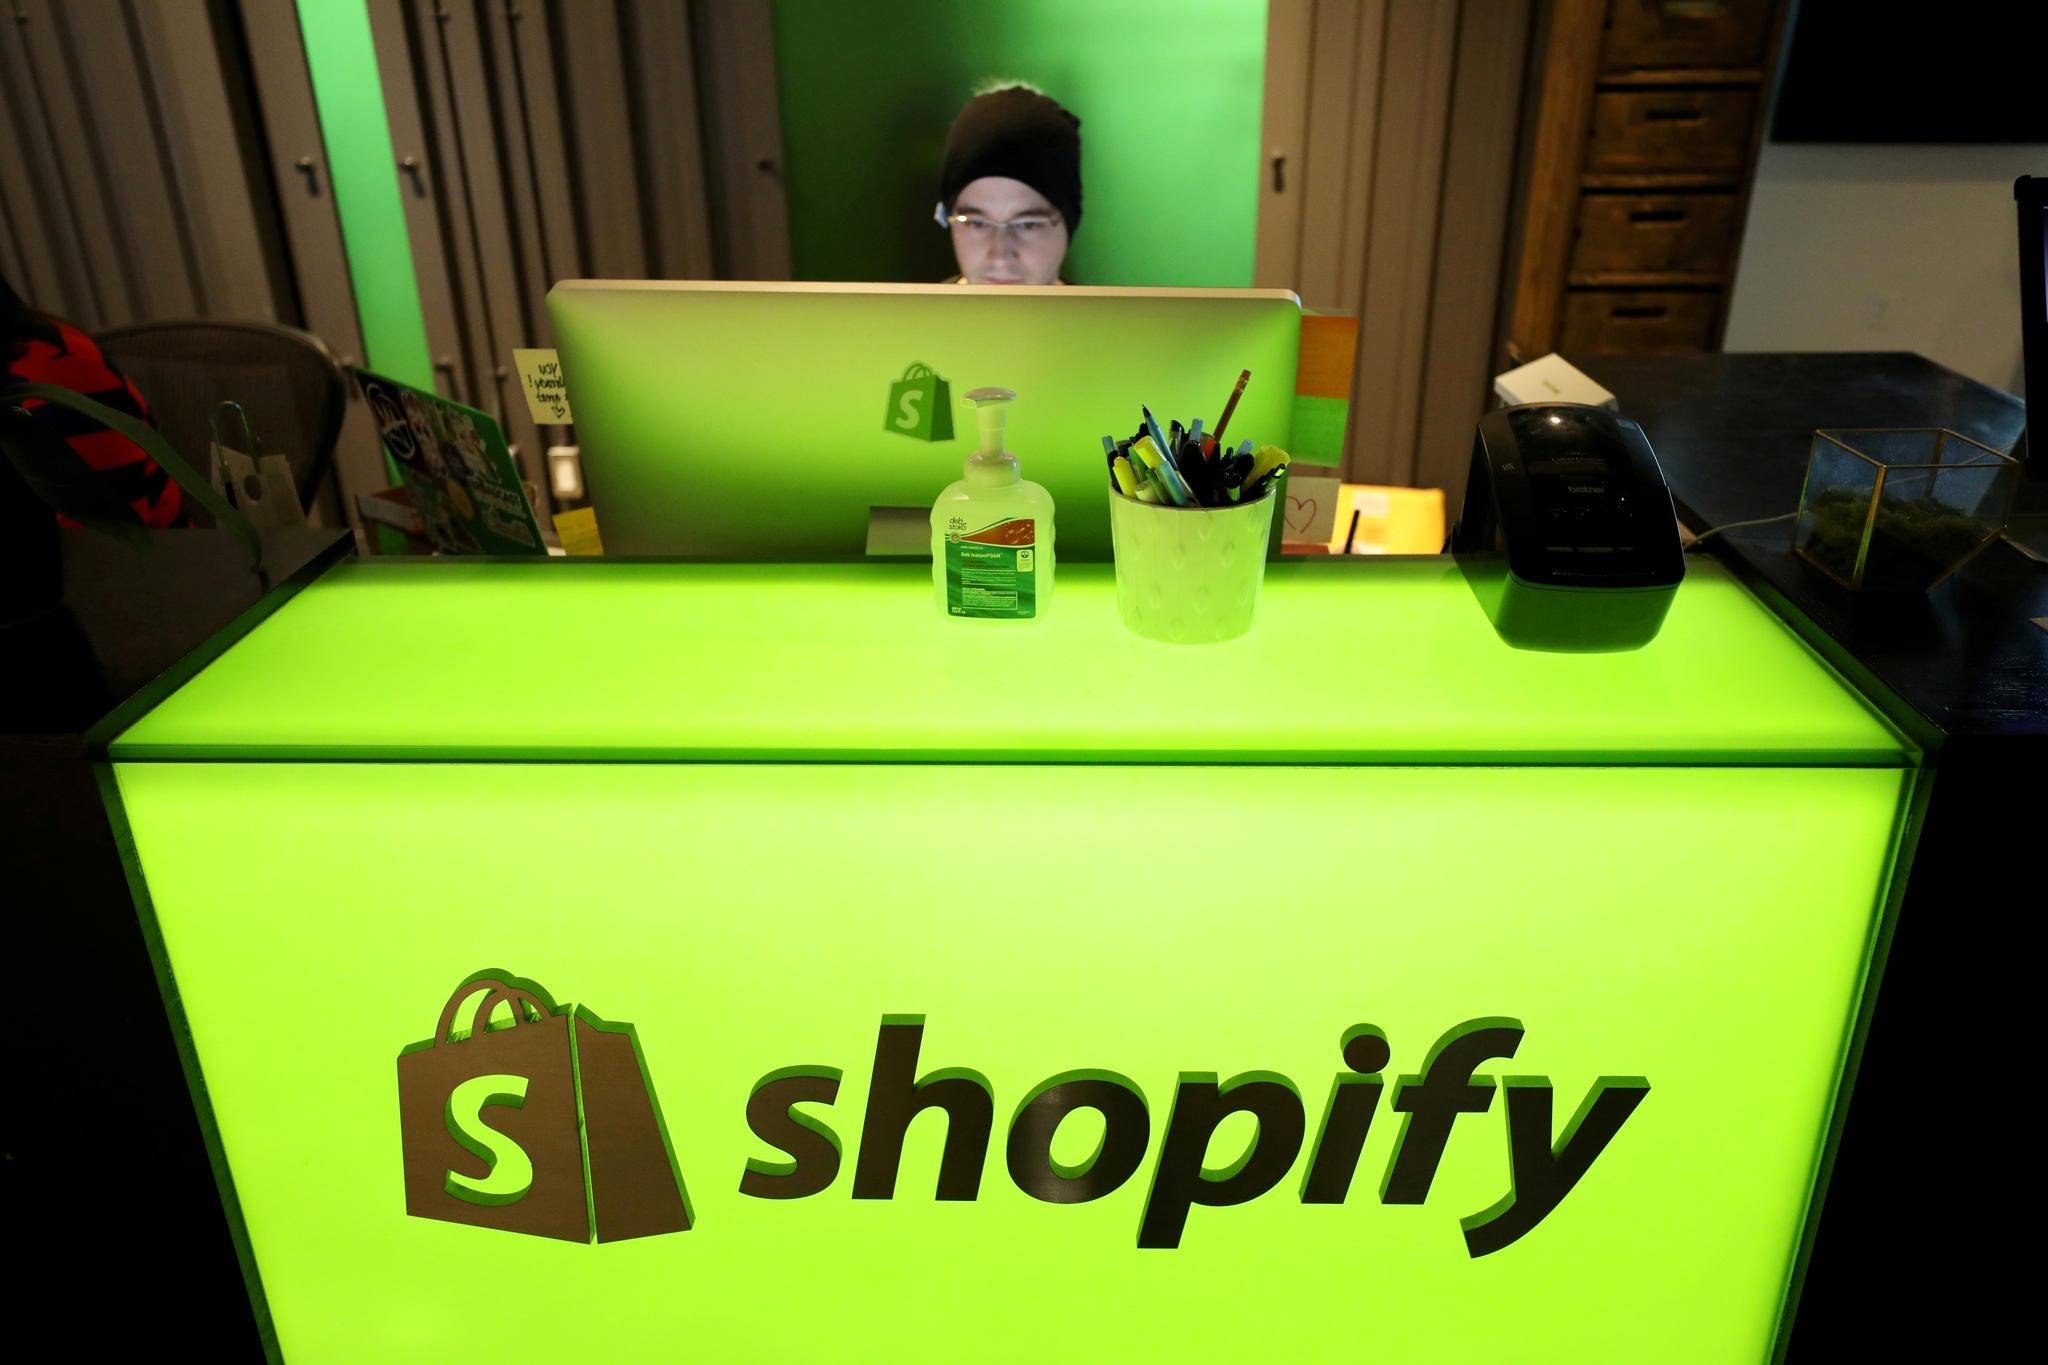 Canada's Shopify buys contract to suck CO2 from air to cut emissions